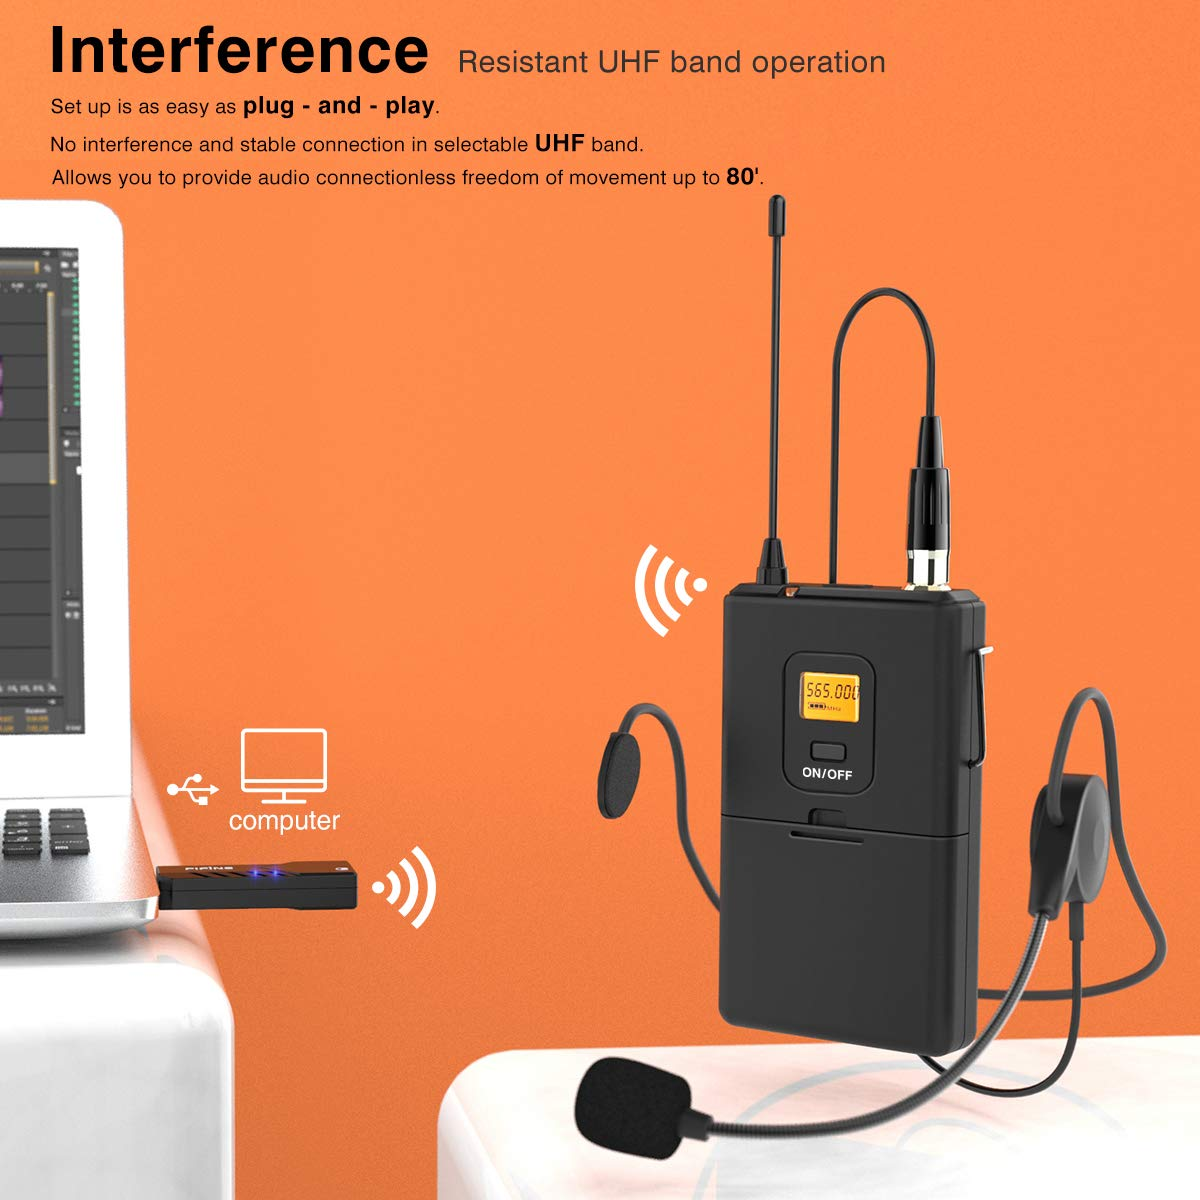 Wireless Microphones For Computerfifine Usb Mac Mini Mic Jack Wiring Microphone System Pc Macheadset Uhf With Receivertransmitter